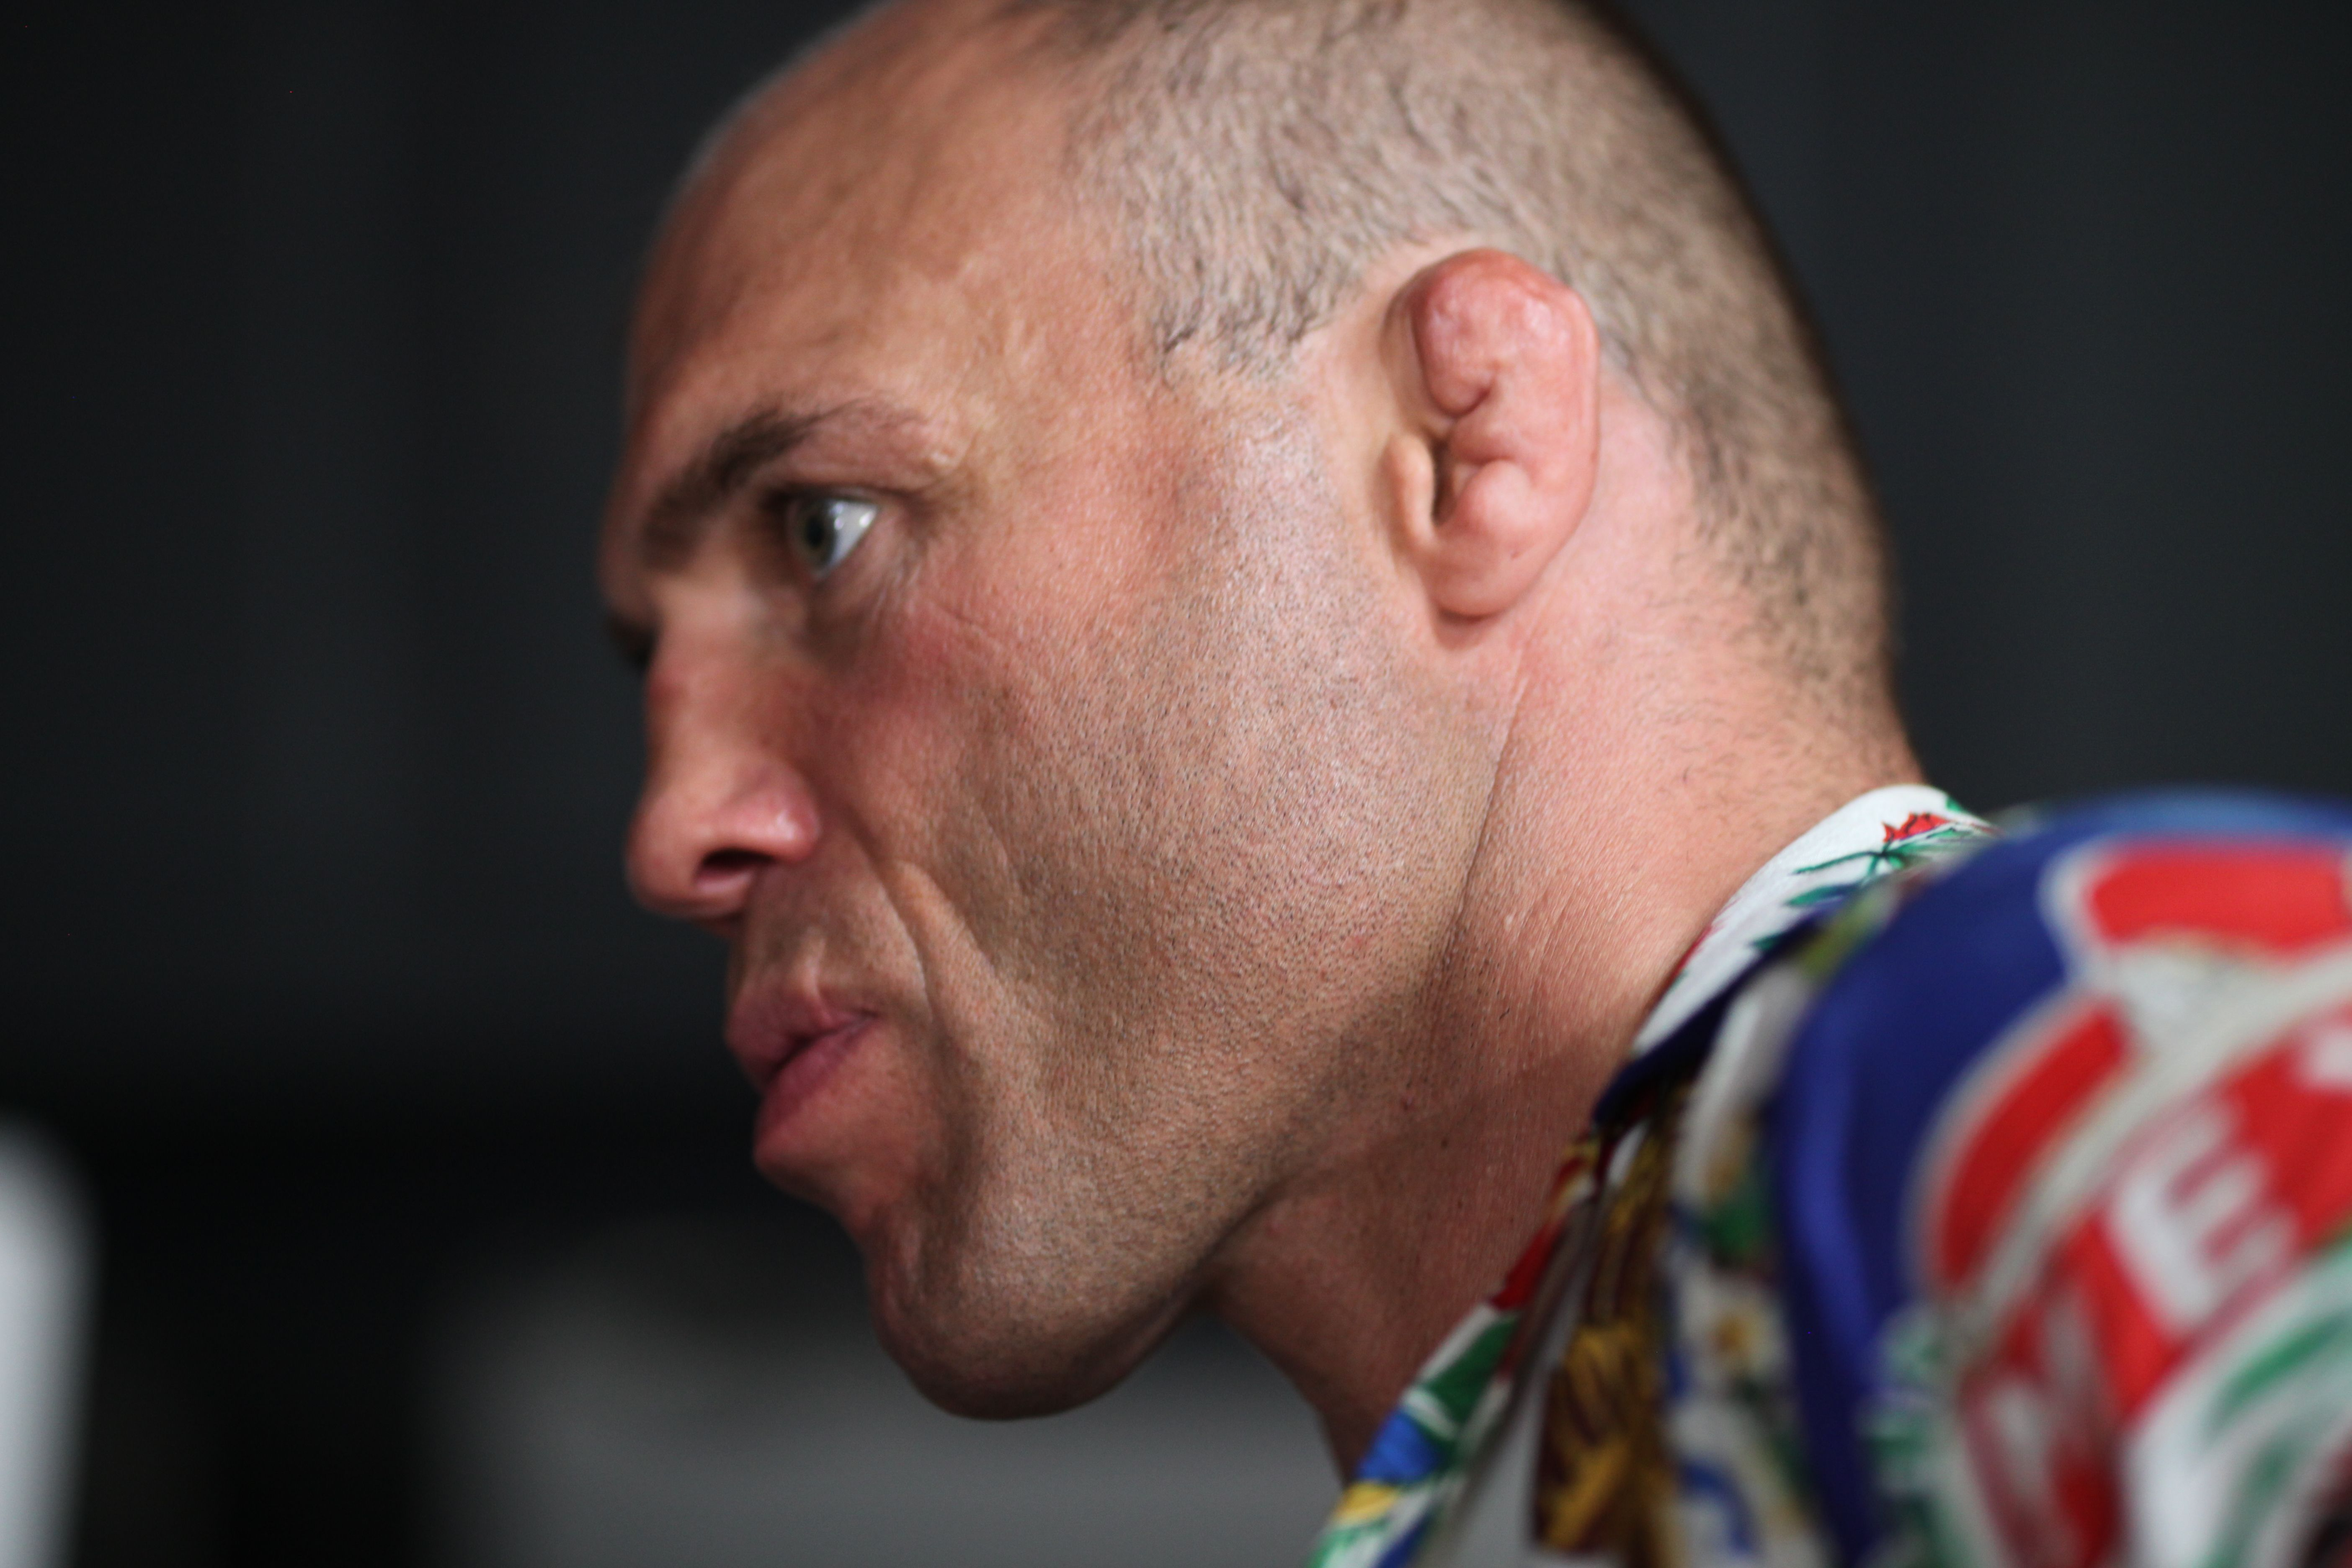 Randy Couture Images